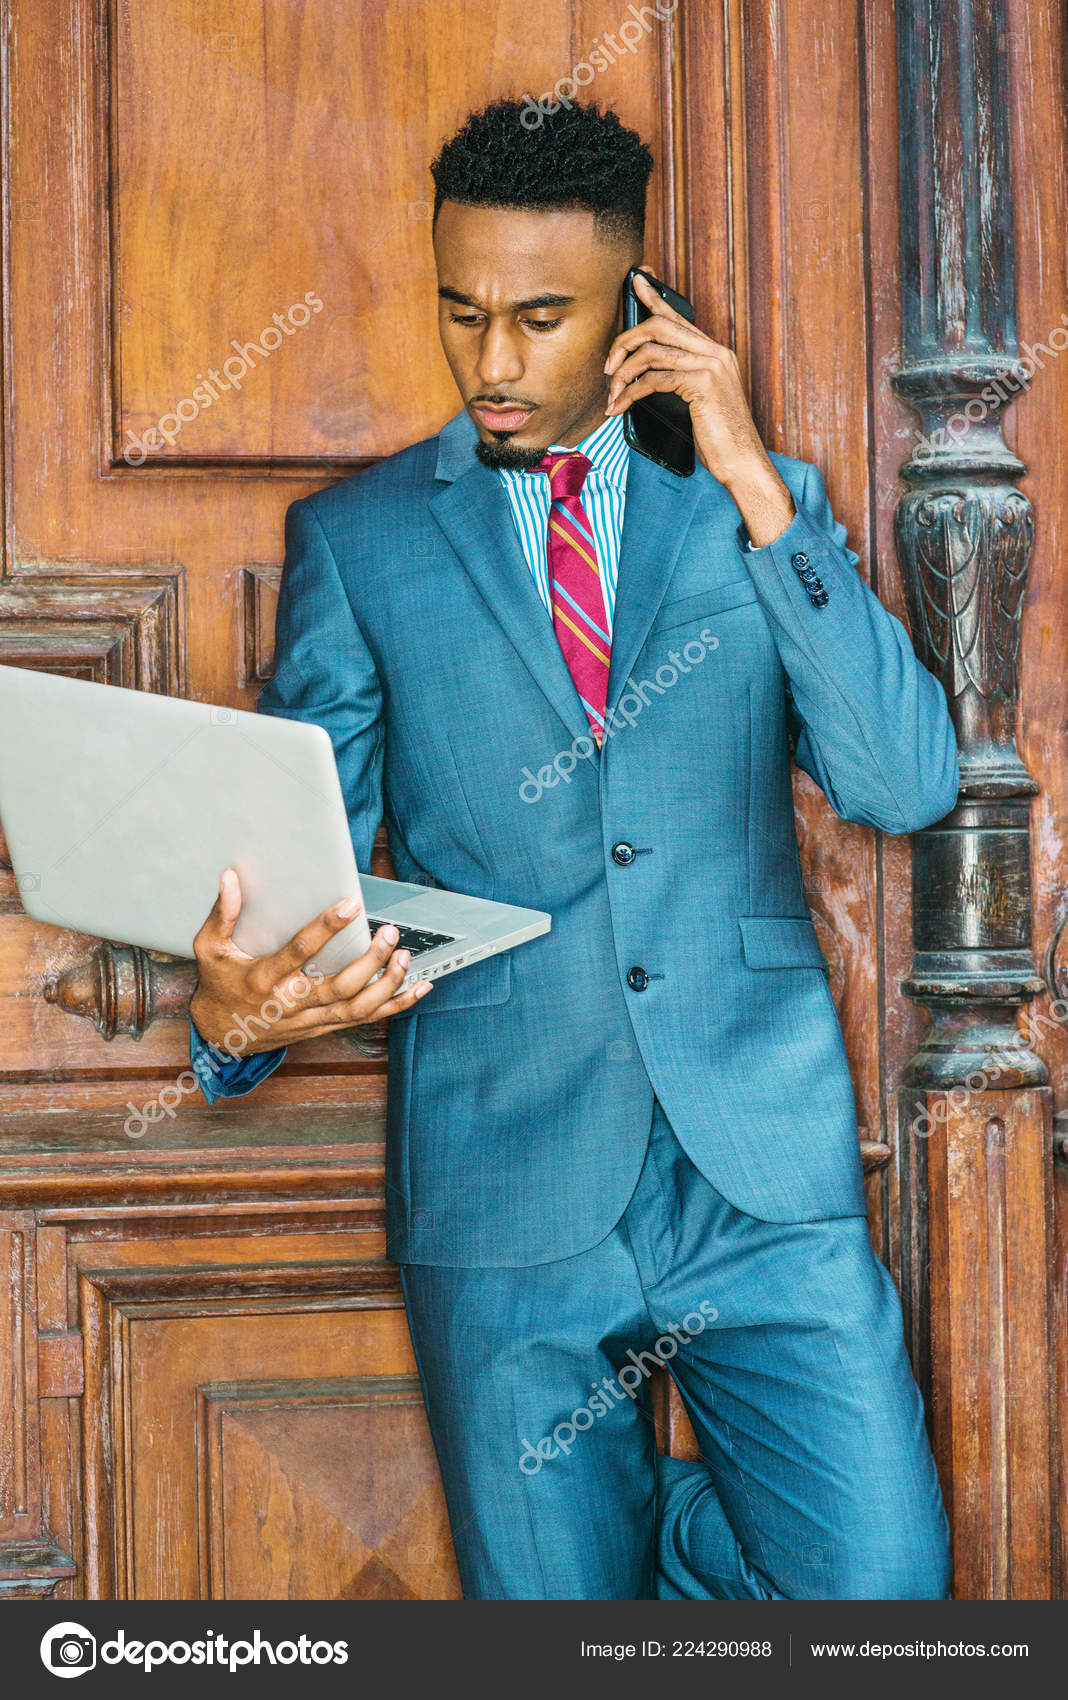 90b7de79ec Young African American Businessman Beard Working New York Wearing Sky —  Stock Photo